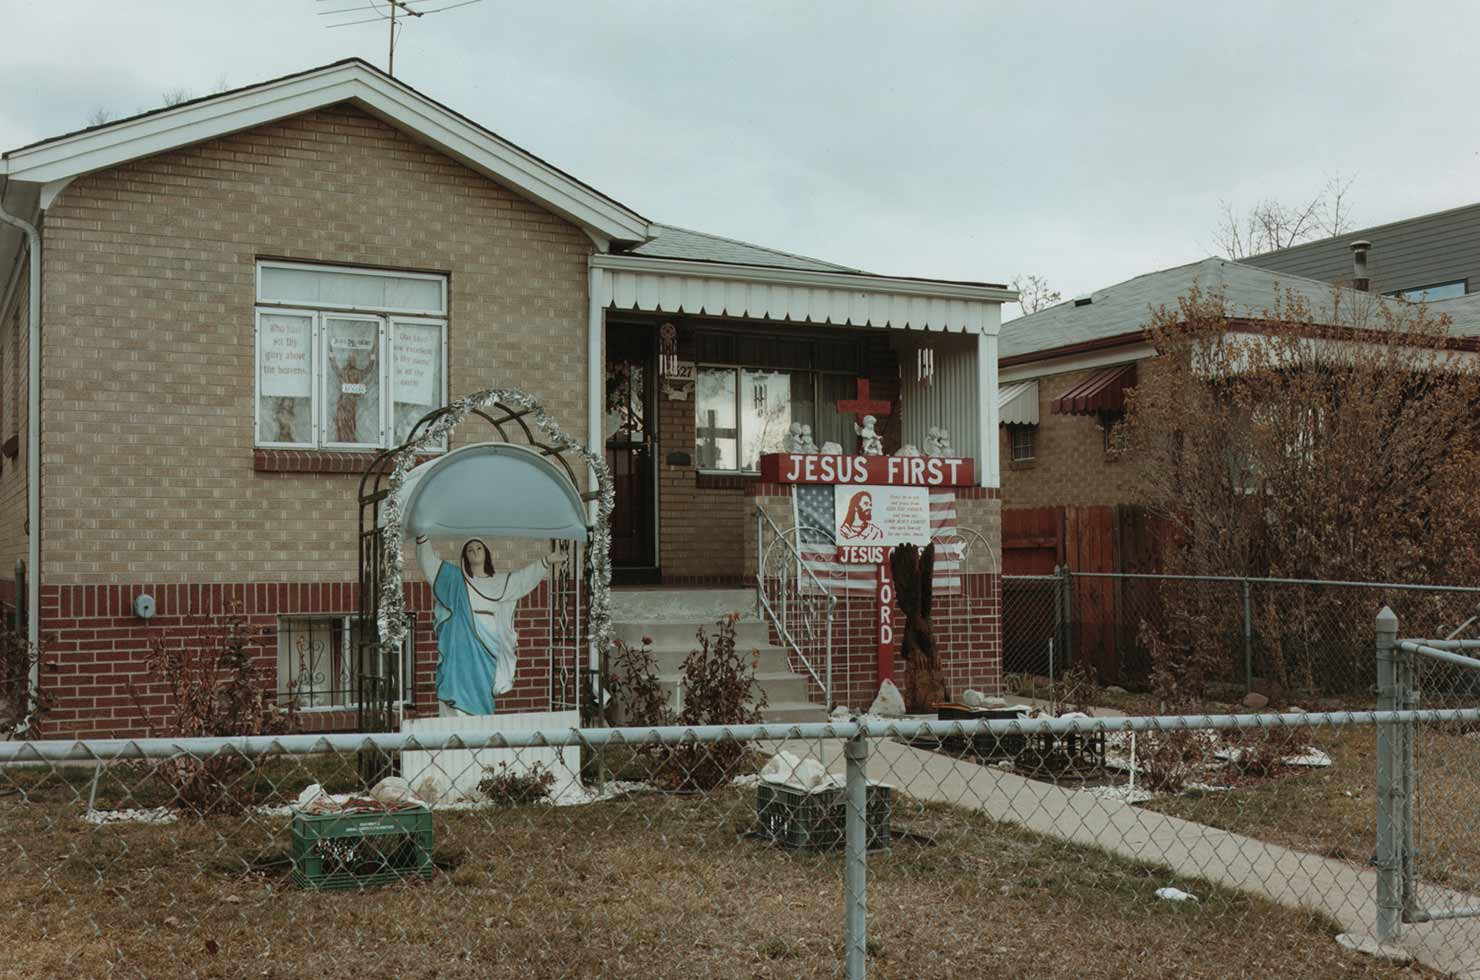 33rd Avenue, Denver, Colorado Photo : Tim Richmond